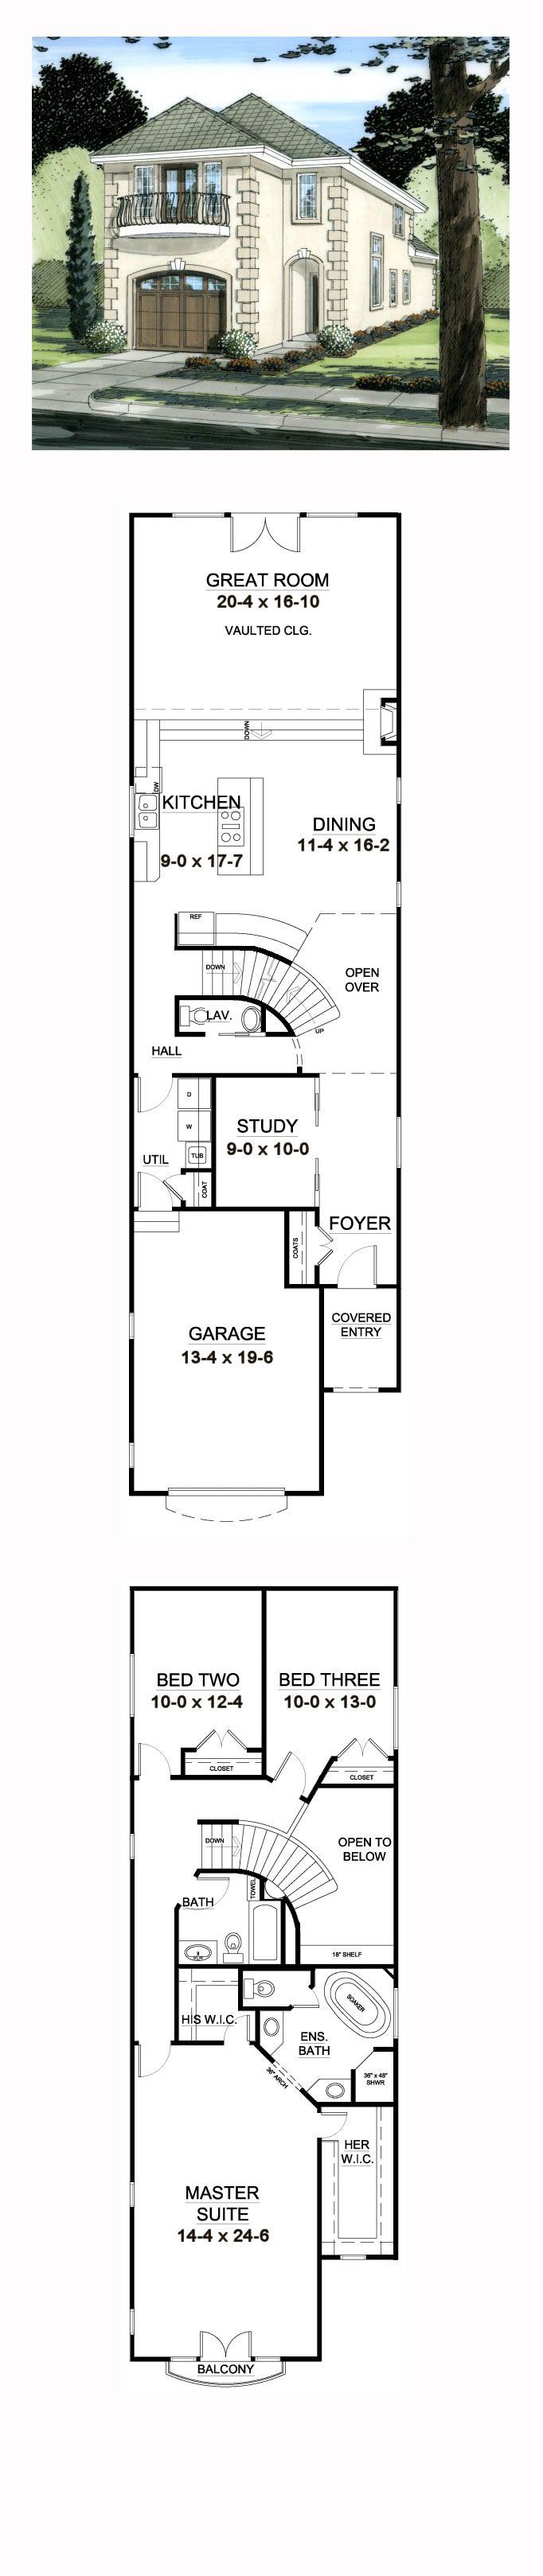 54 best plans images on pinterest dream house plans 54 best plans images on pinterest dream house plans architecture and home